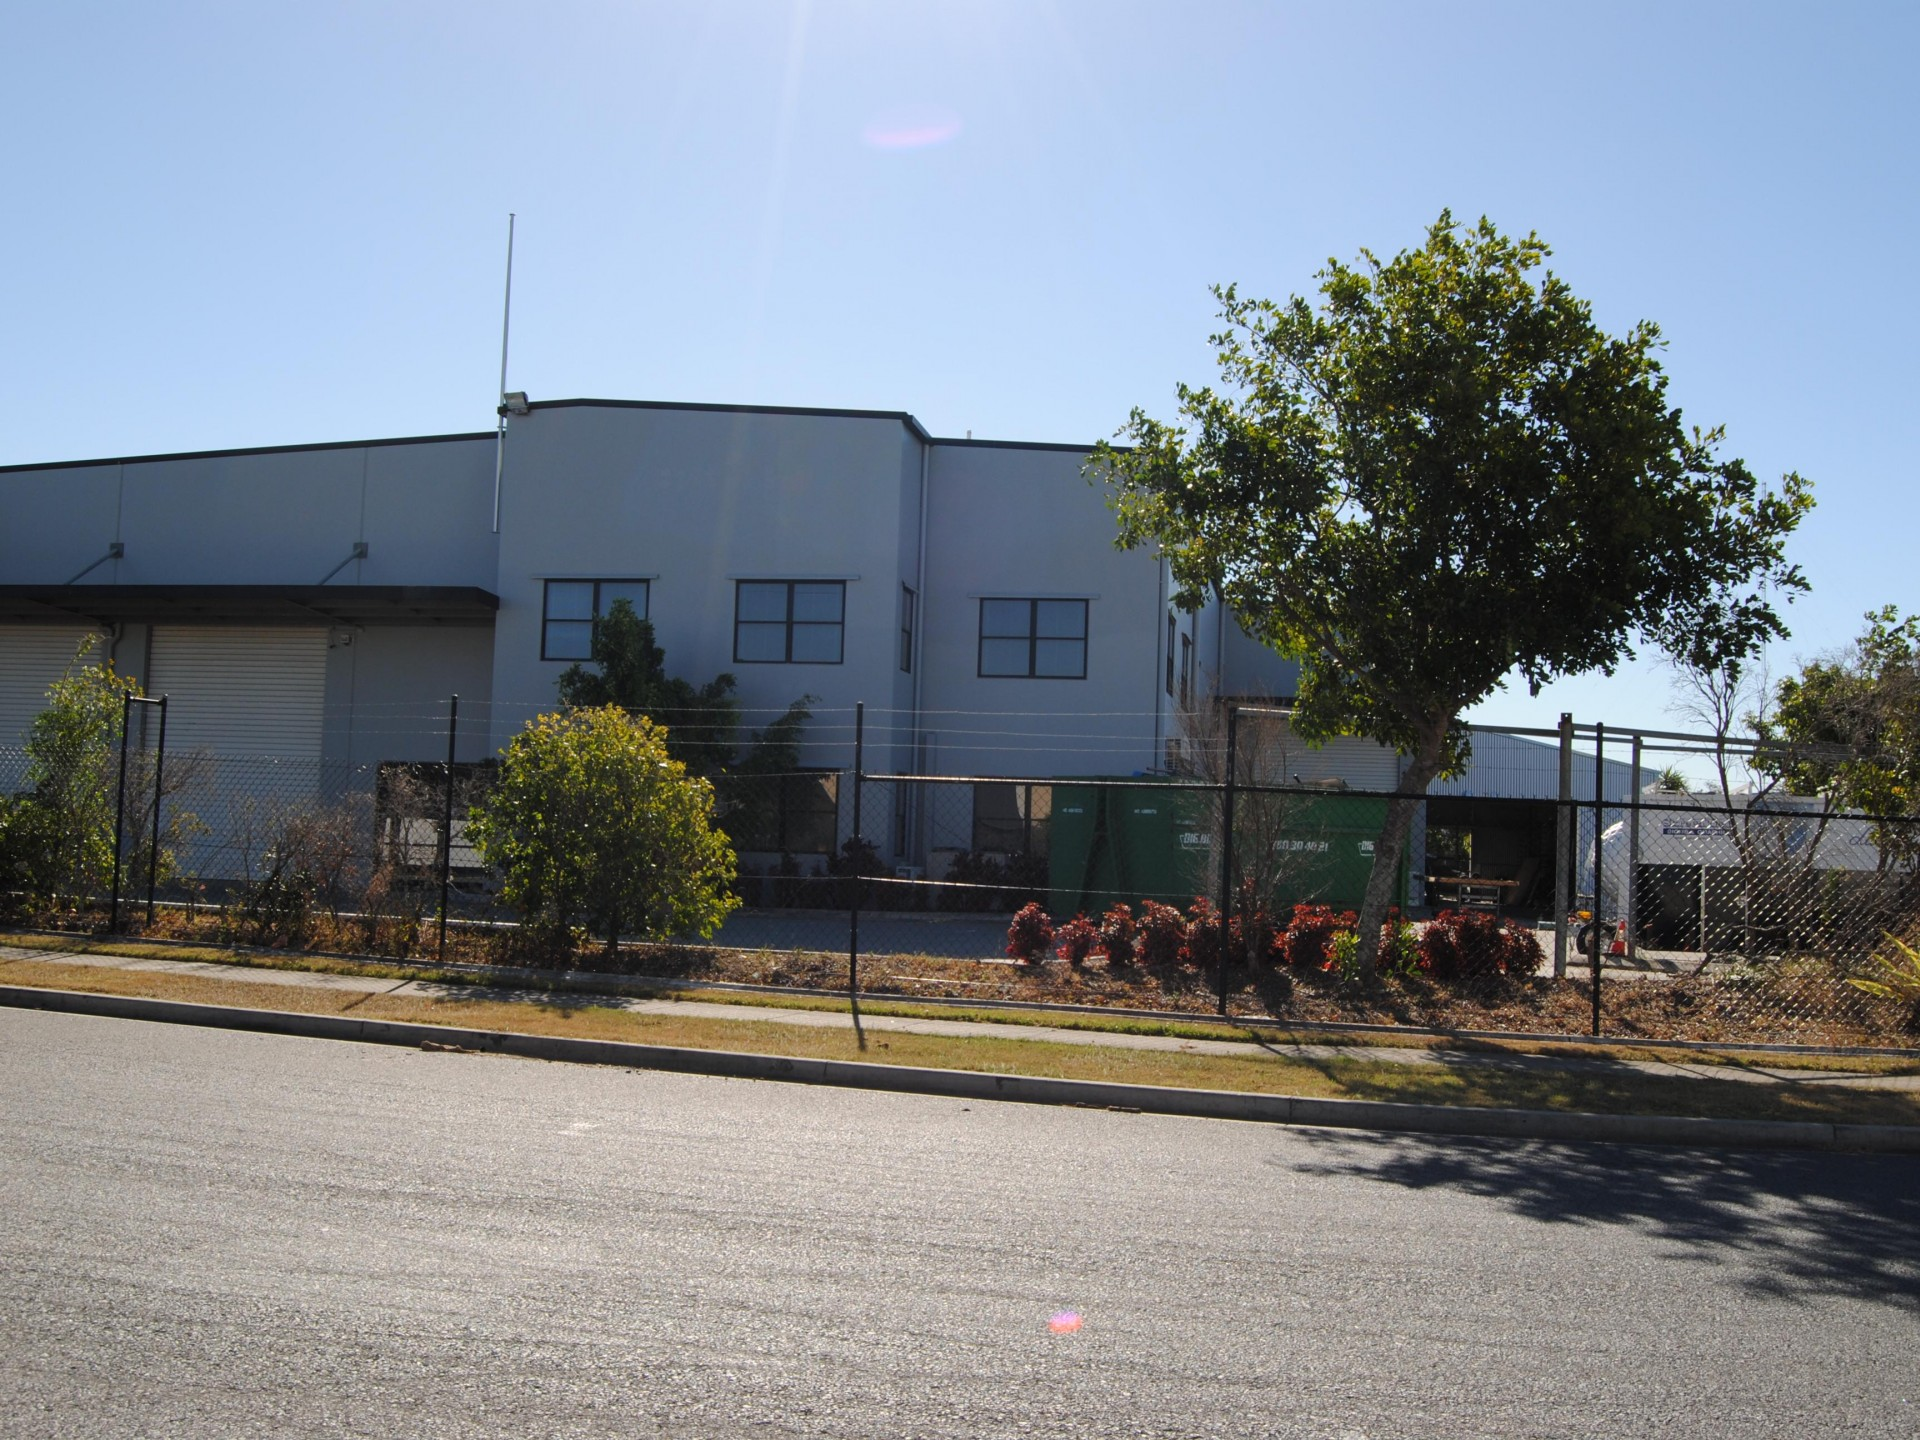 VACANT & READY TO GO - 1,600m2 Freestanding Office / Warehouse